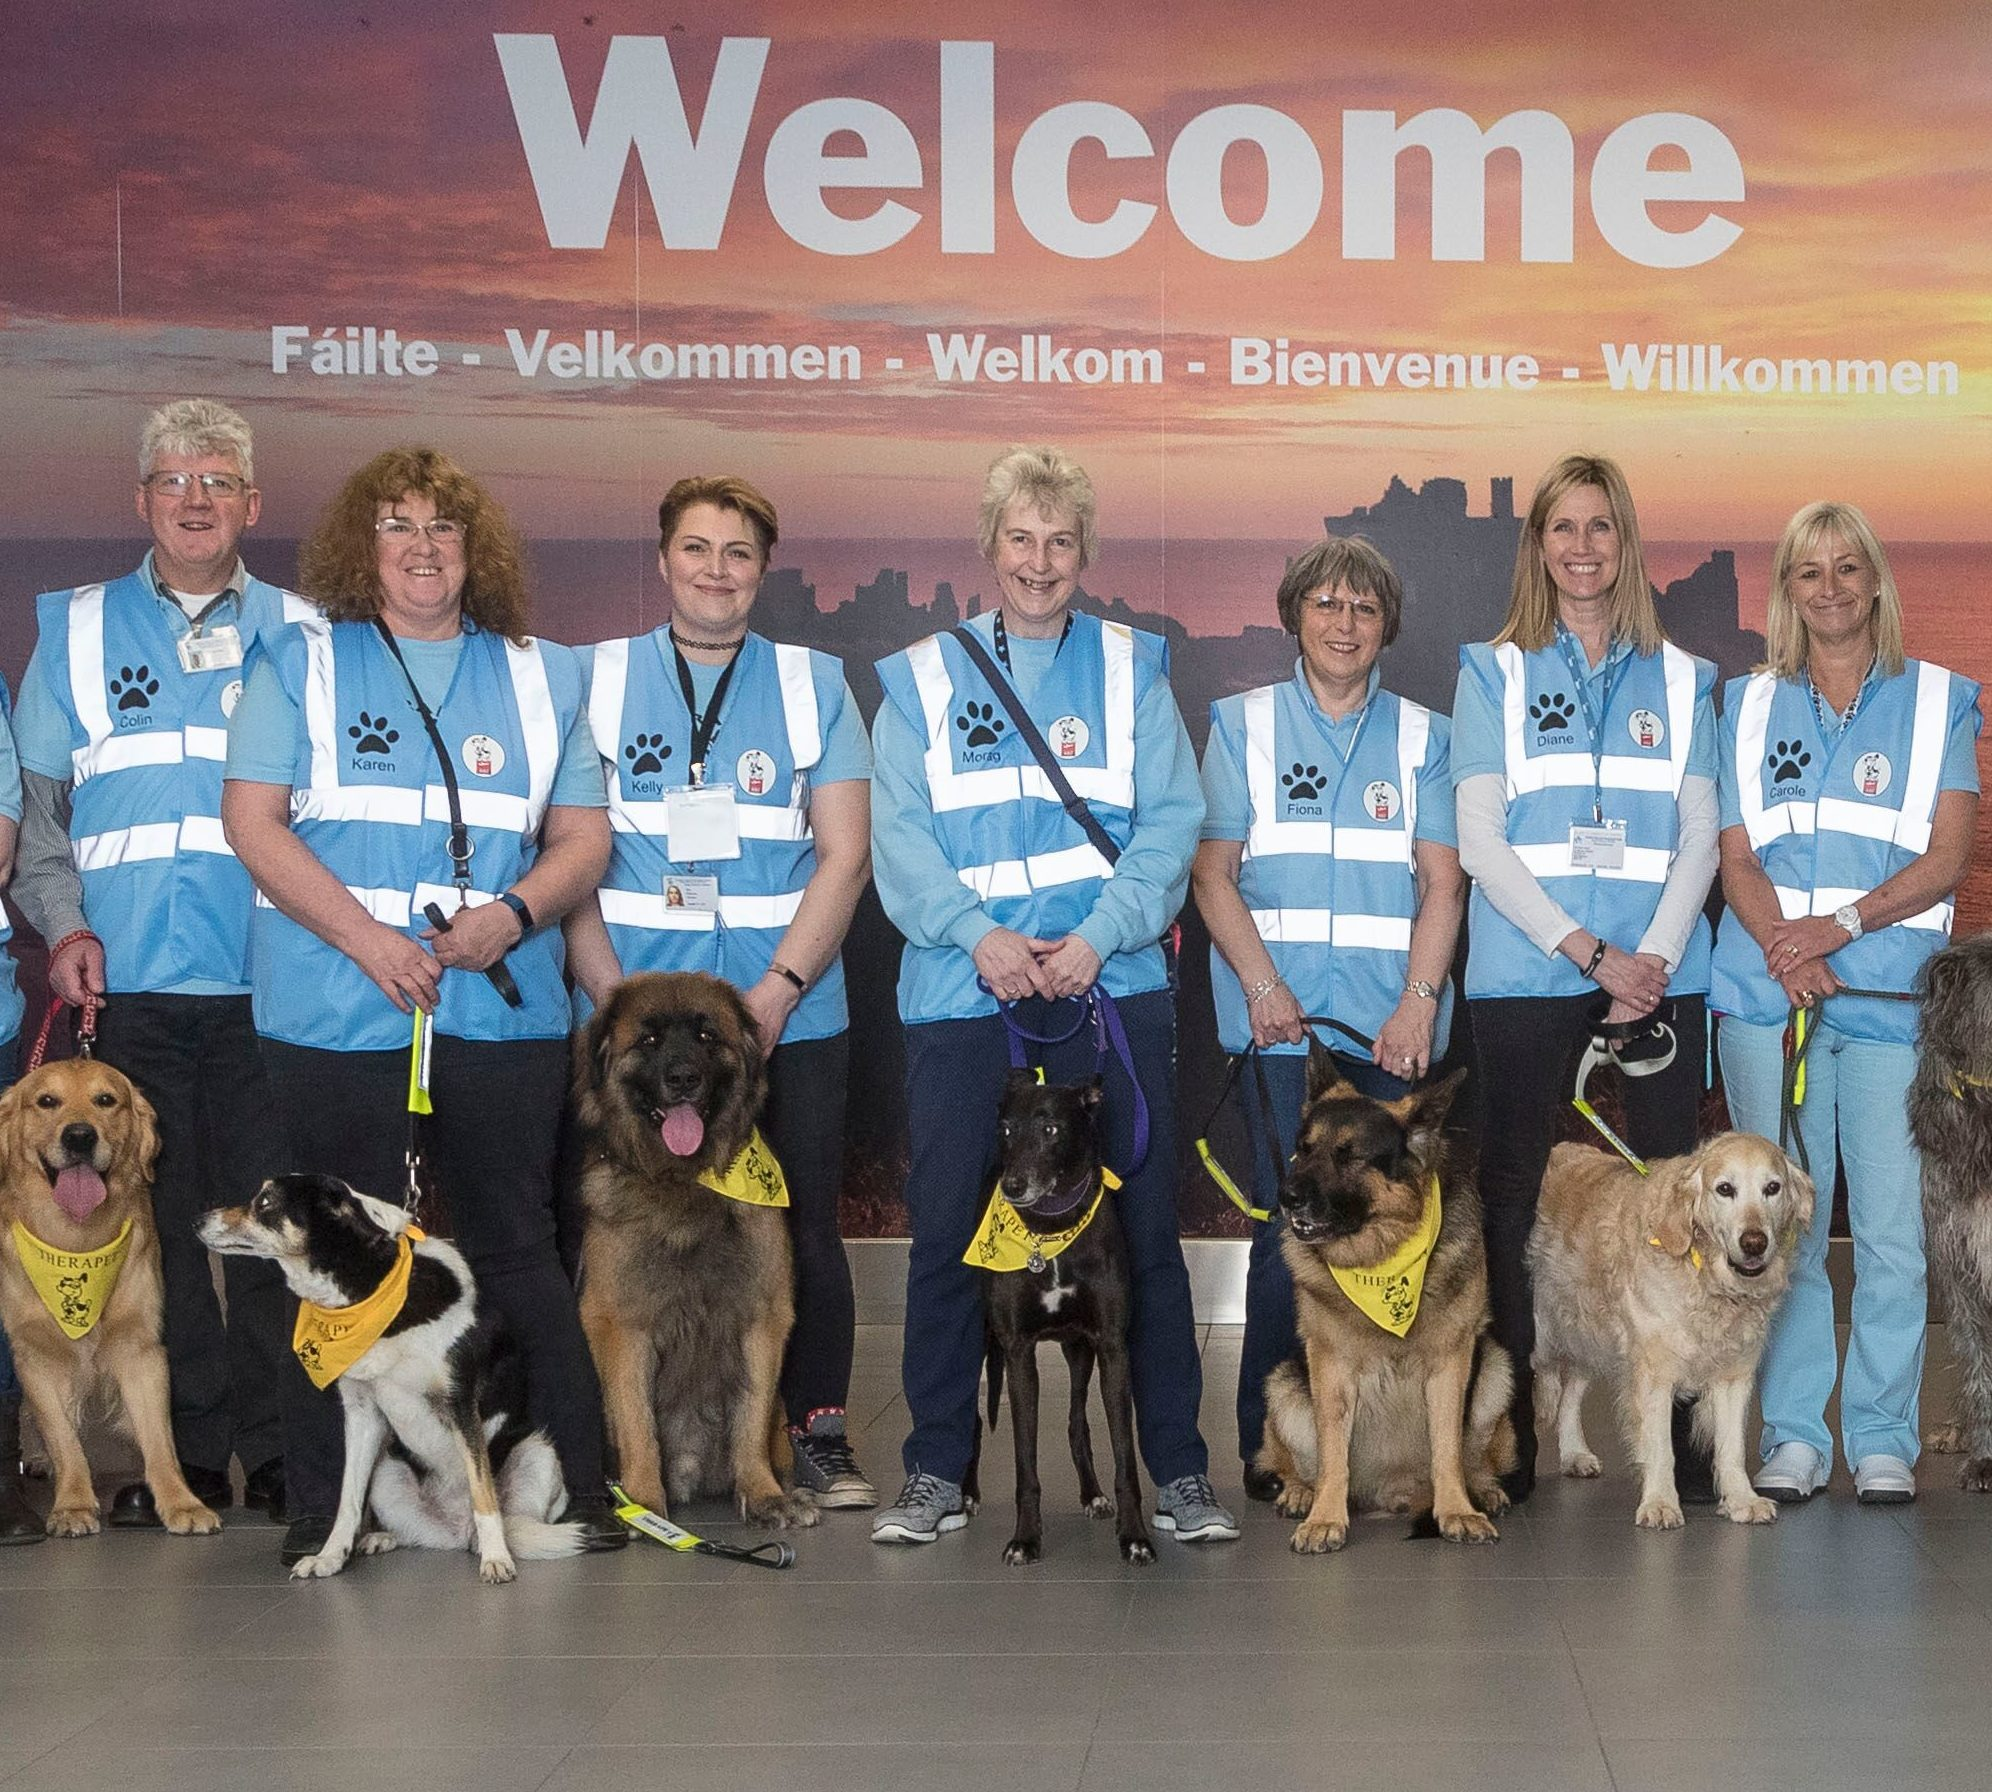 Easily identifiable in their high-vis jackets and bandanas, the dogs will mingle with passengers and staff throughout the terminal.